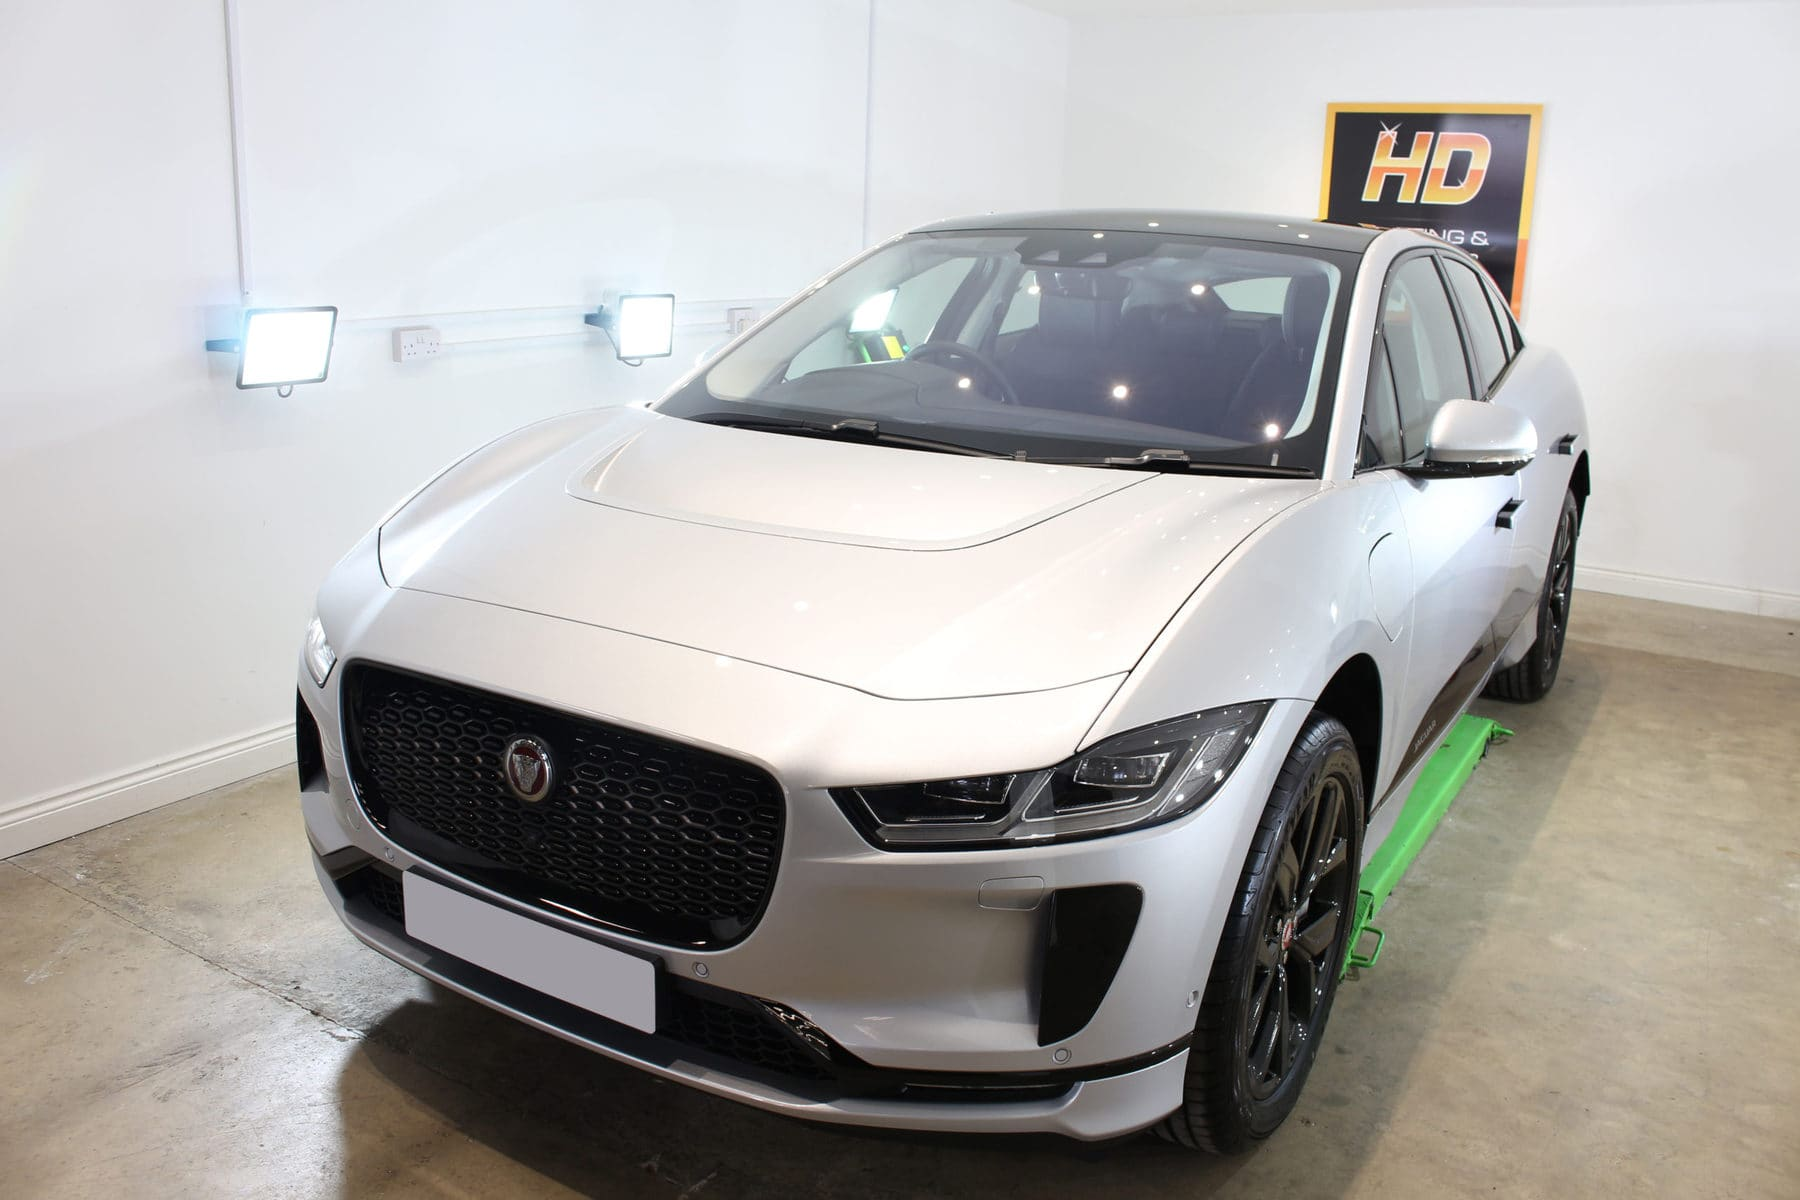 Jaguar I-PACE, HD Valeting & Detailing, Norfolk